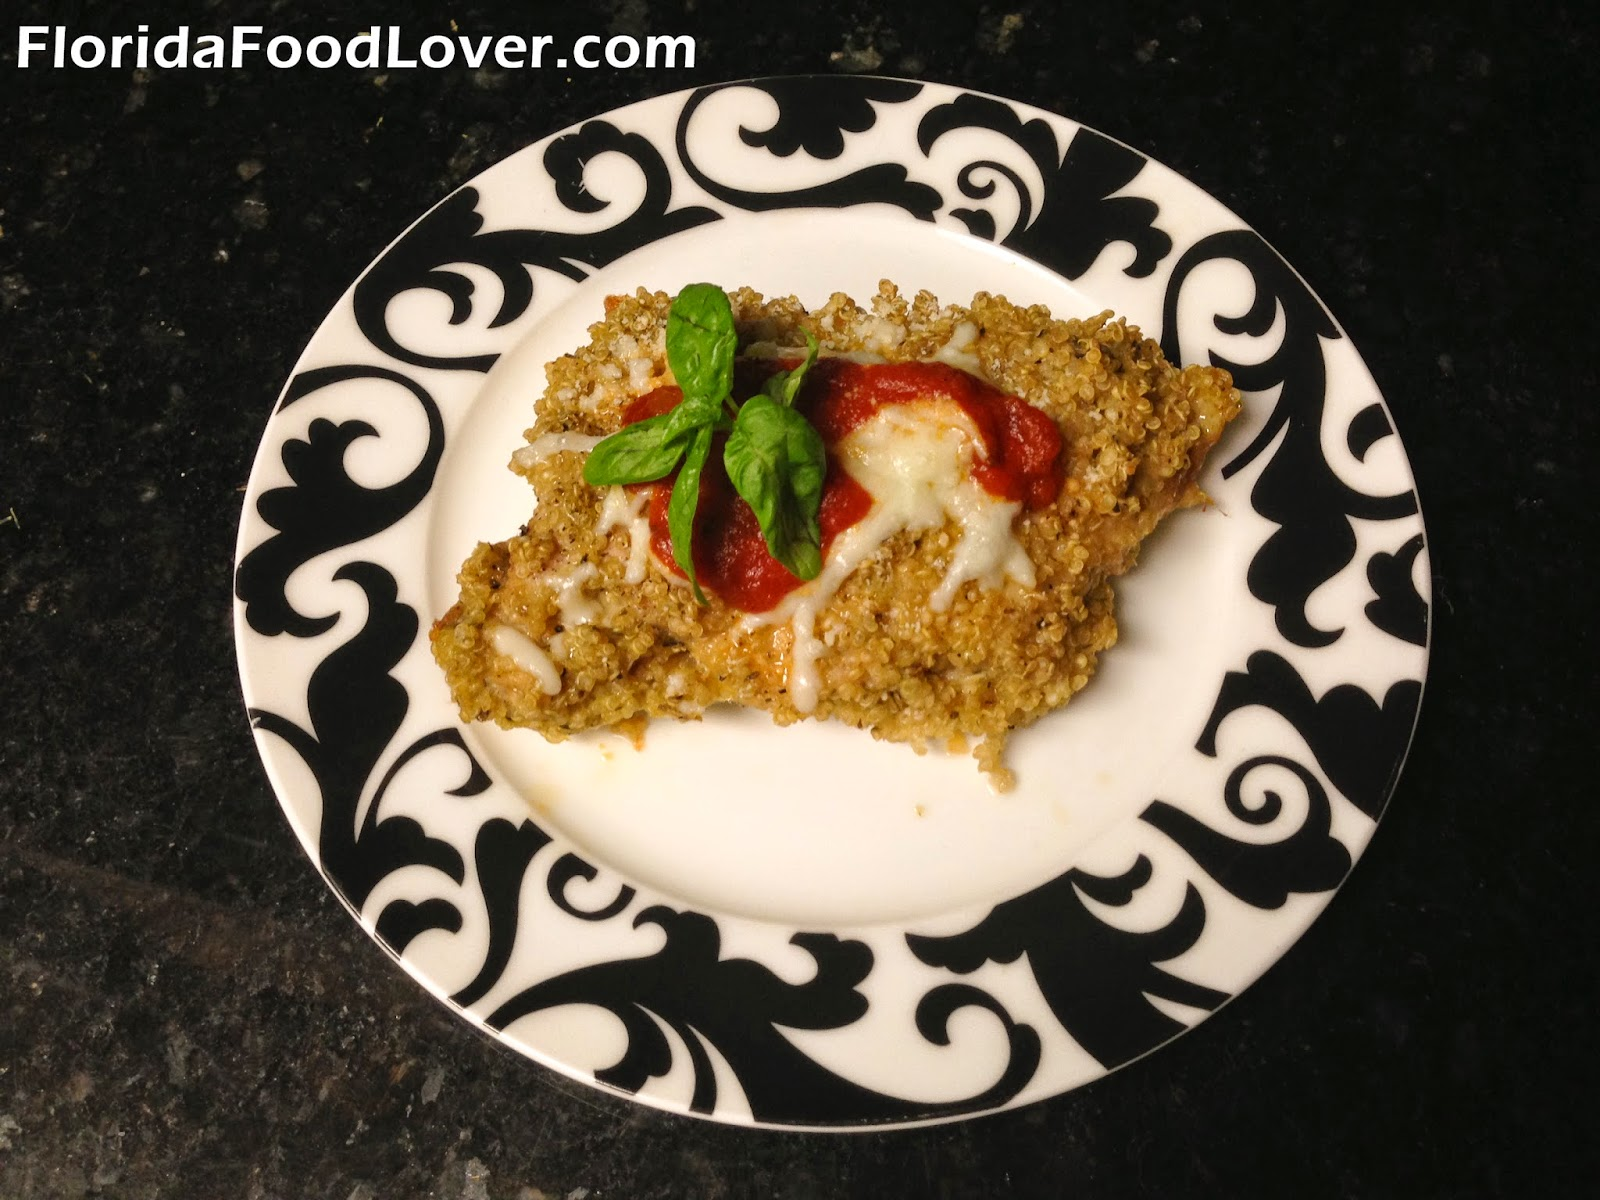 Florida food lover quinoa chicken parmesan quinoa chicken parmesan forumfinder Choice Image